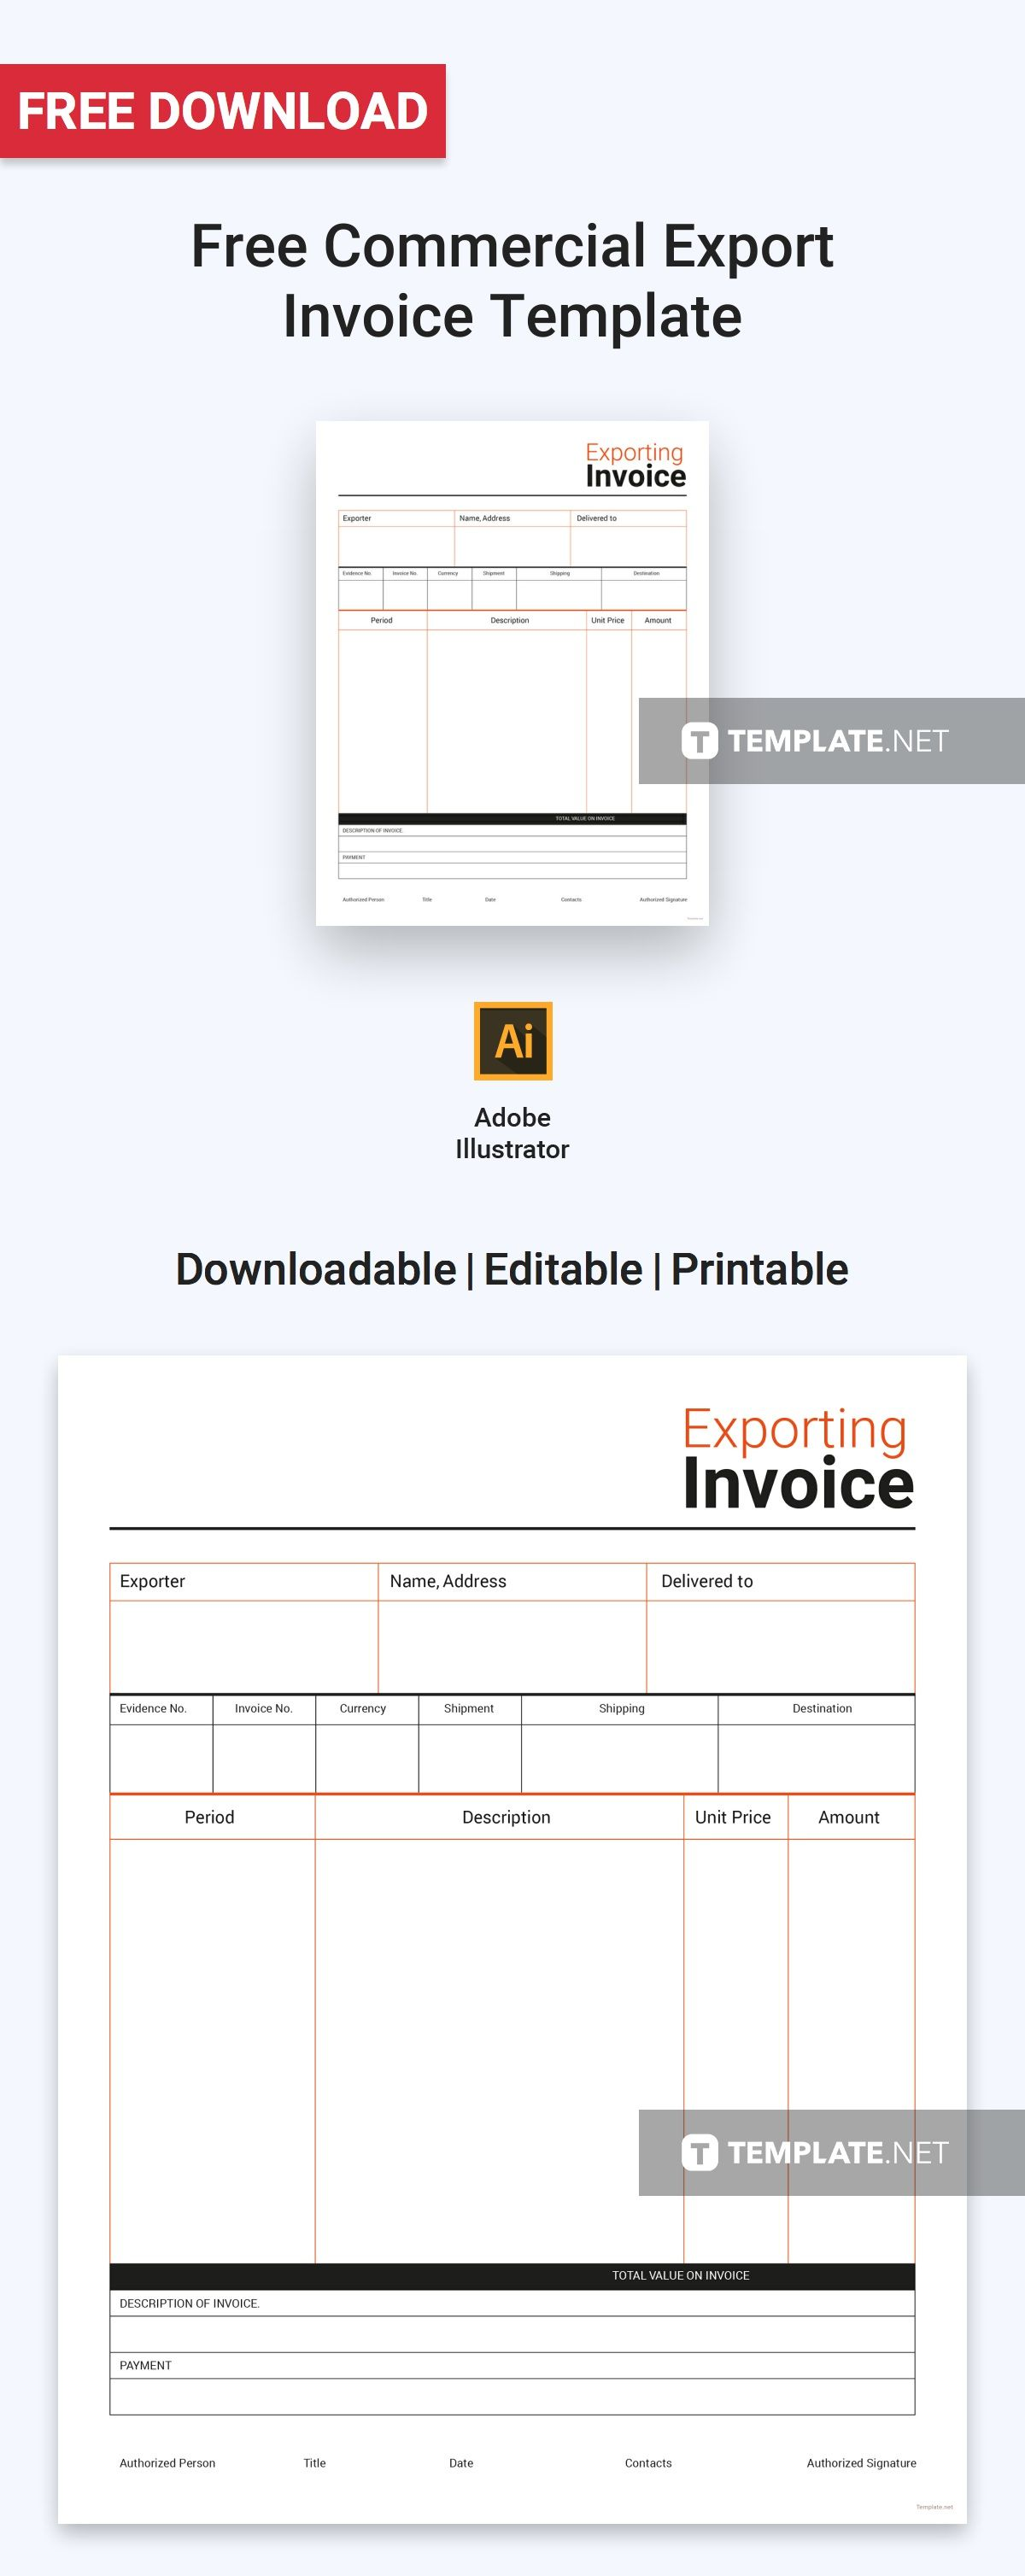 Commercial Export Invoice Template Free Pdf Word Excel Psd Apple Pages Google Docs Google Sheets Illustrator Apple Numbers Invoice Template Invoice Design Template Templates